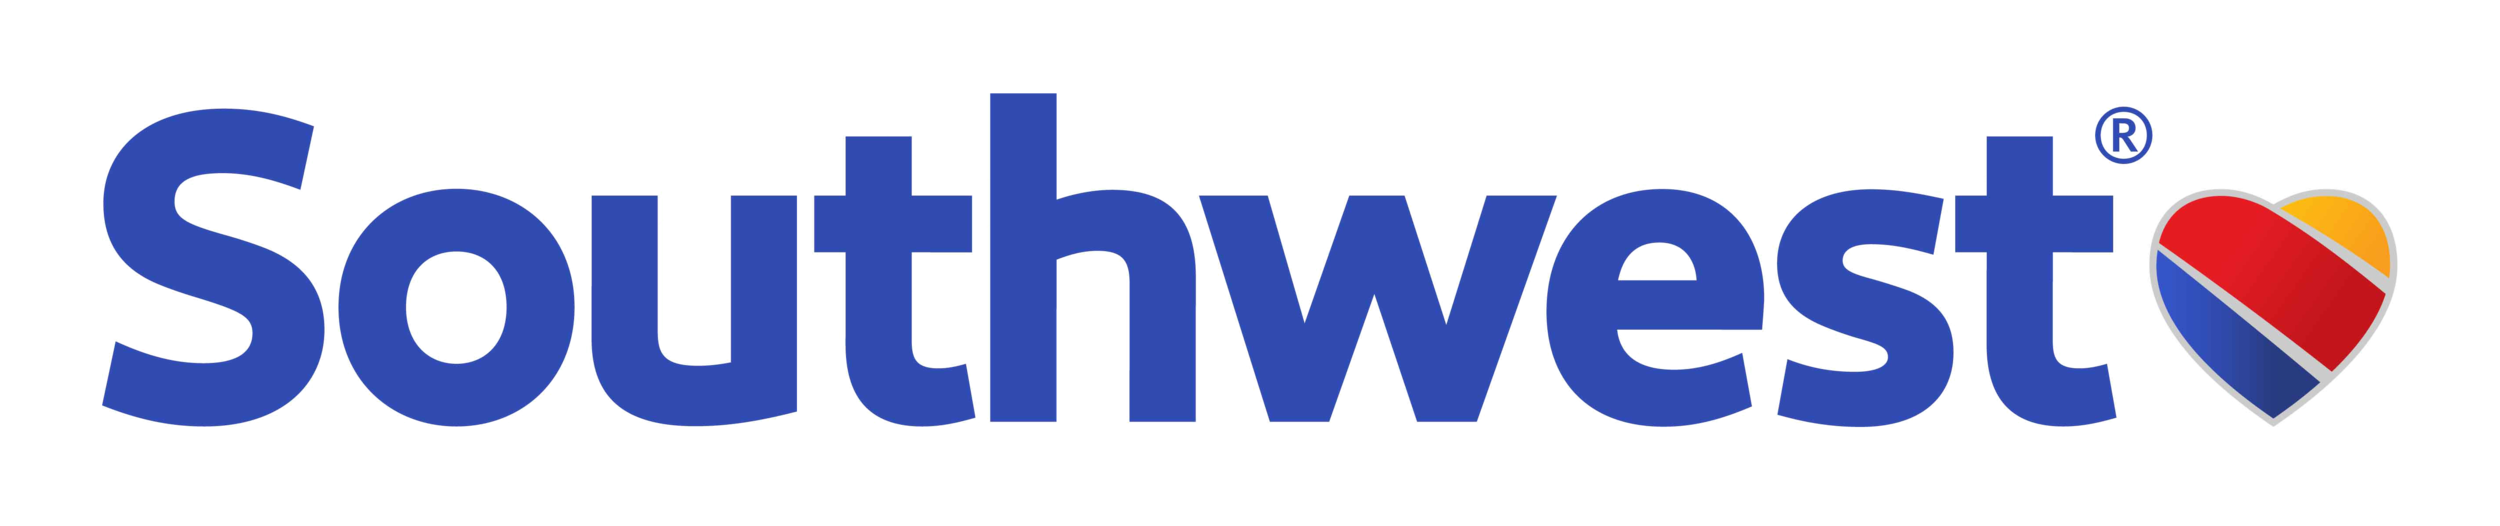 Southwest_logo_transparent_png.png